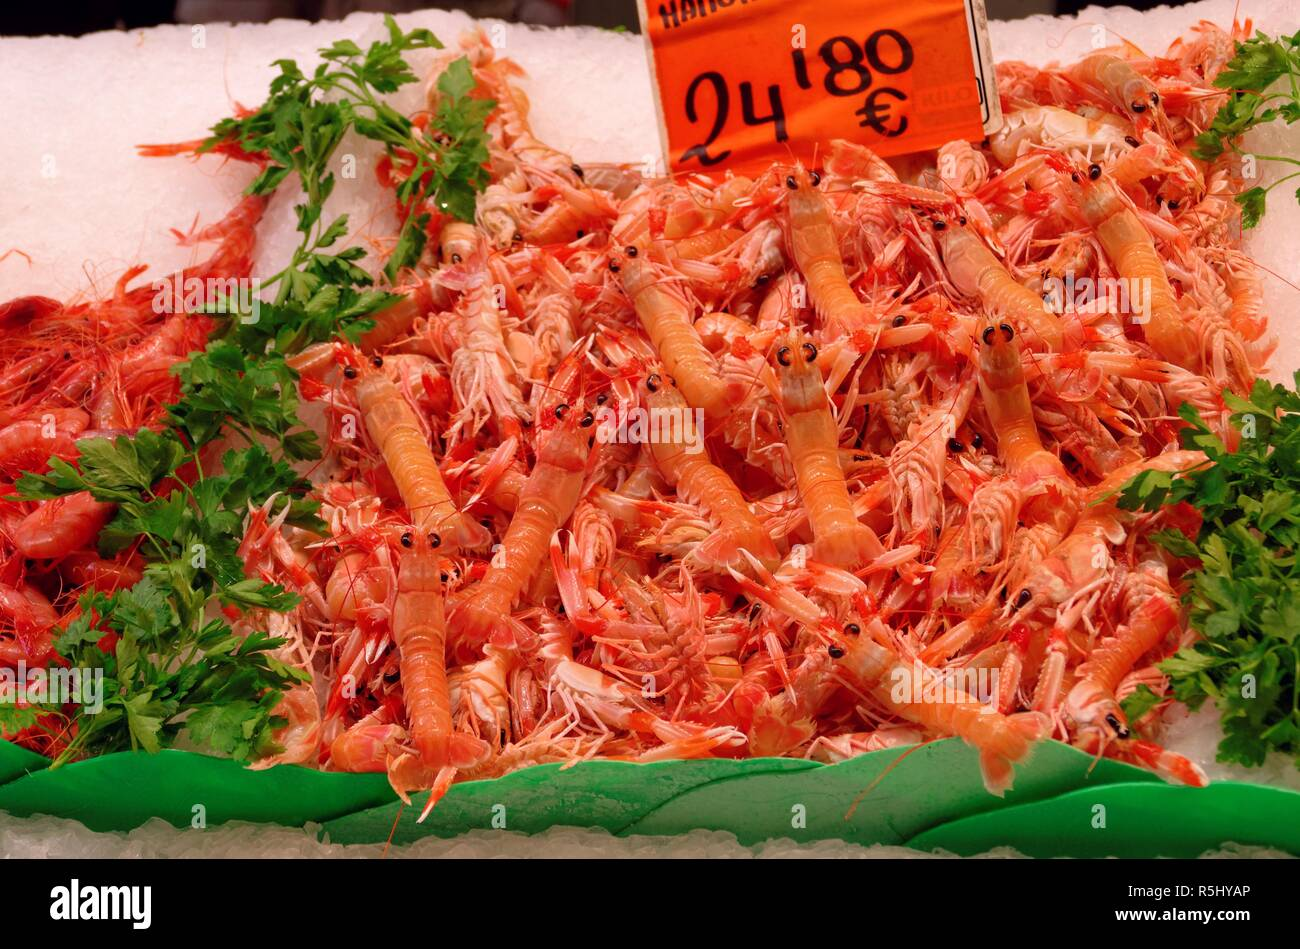 norway lobster - Stock Image